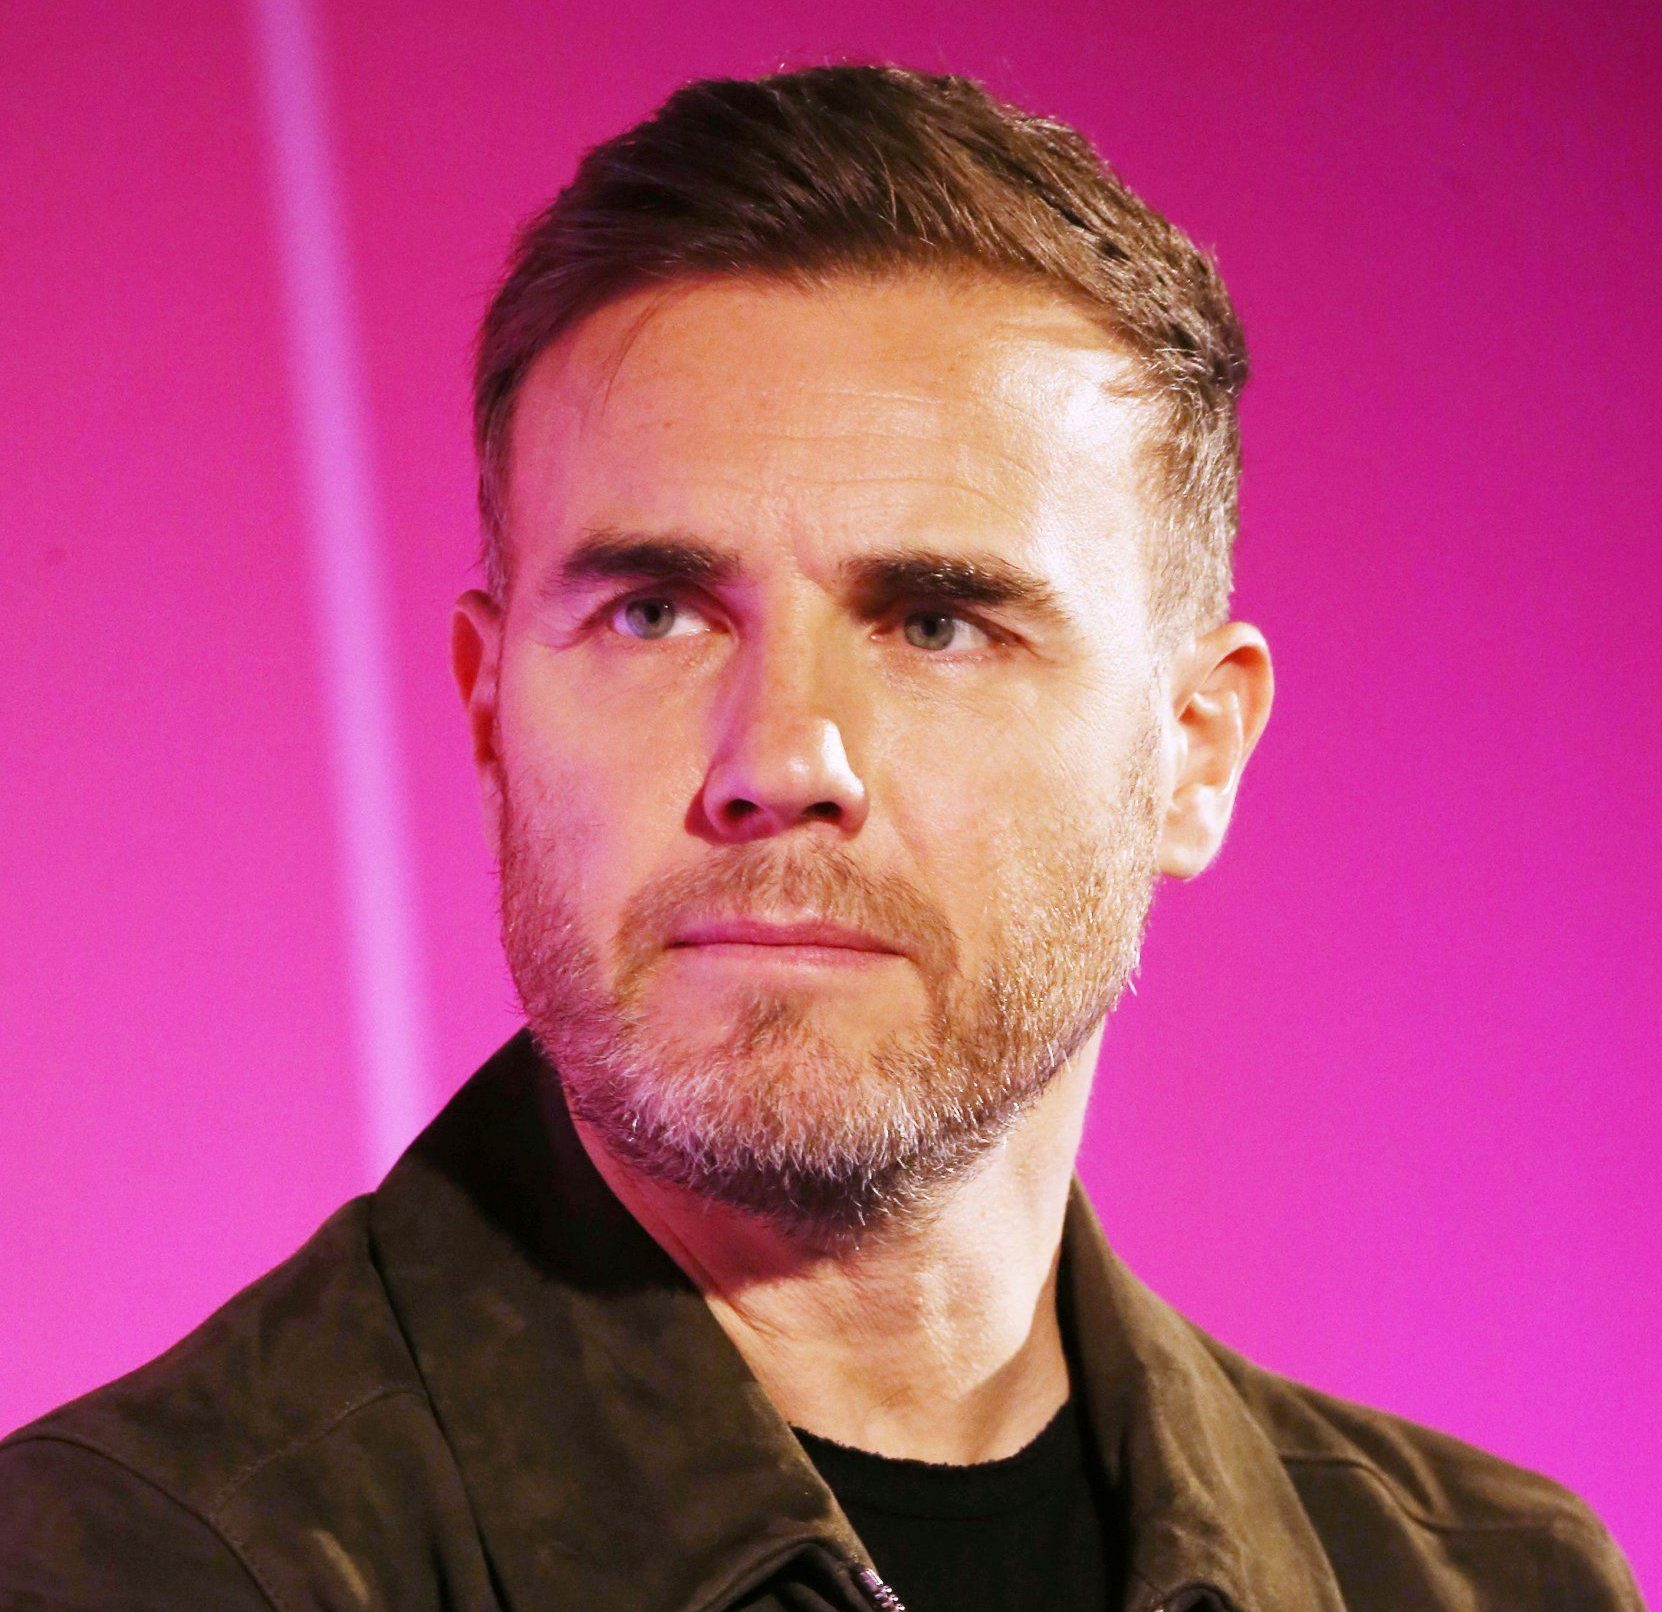 Gary Barlow reveals he had a mental breakdown after loss of daughter: 'I had one of those death sleeps'